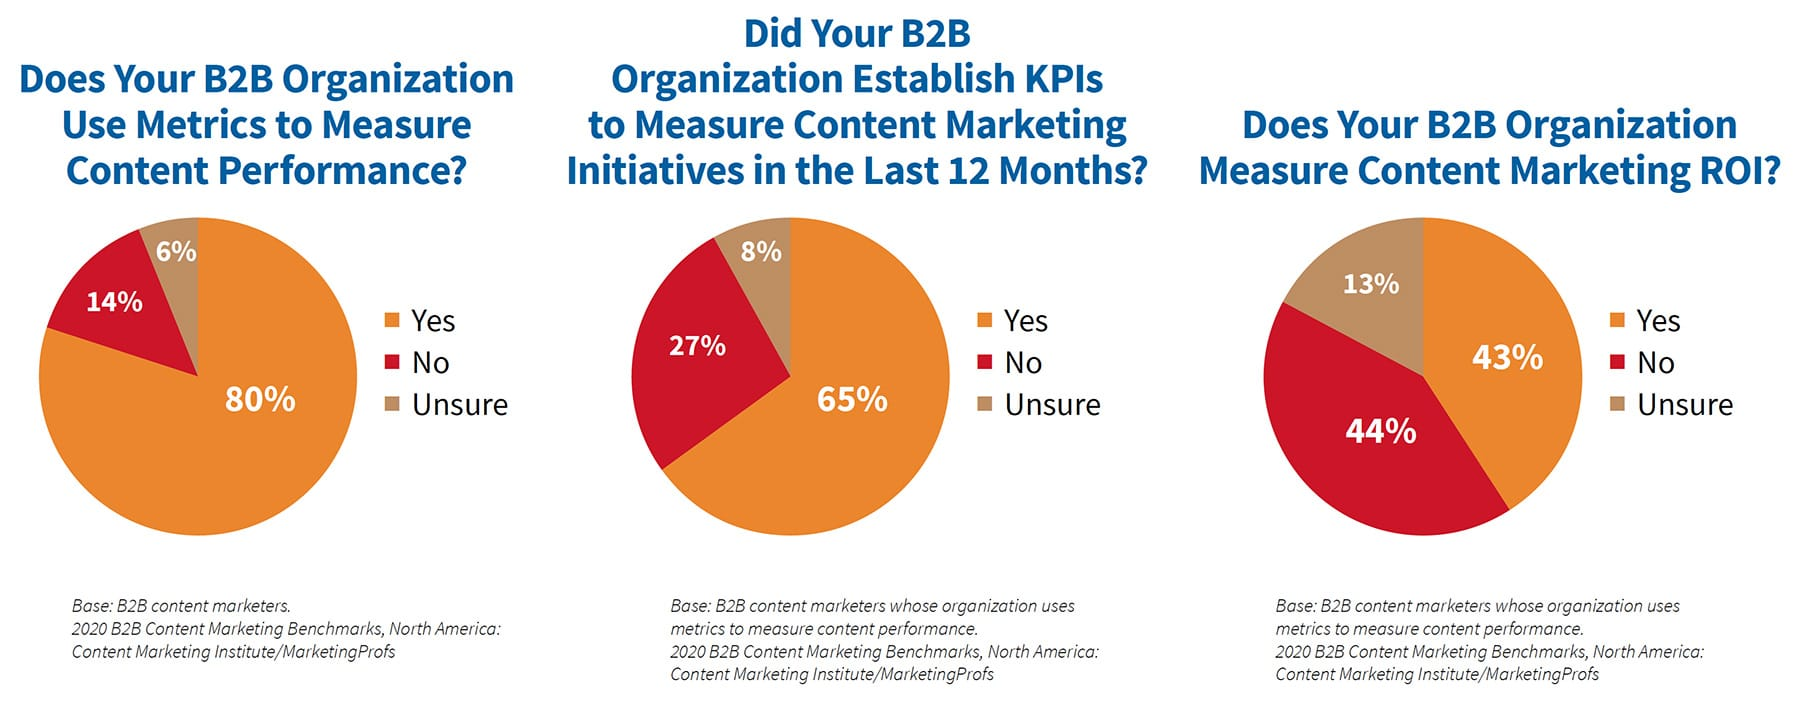 Less than half of B2B companies measure content marketing ROI, but the majority measure content performance